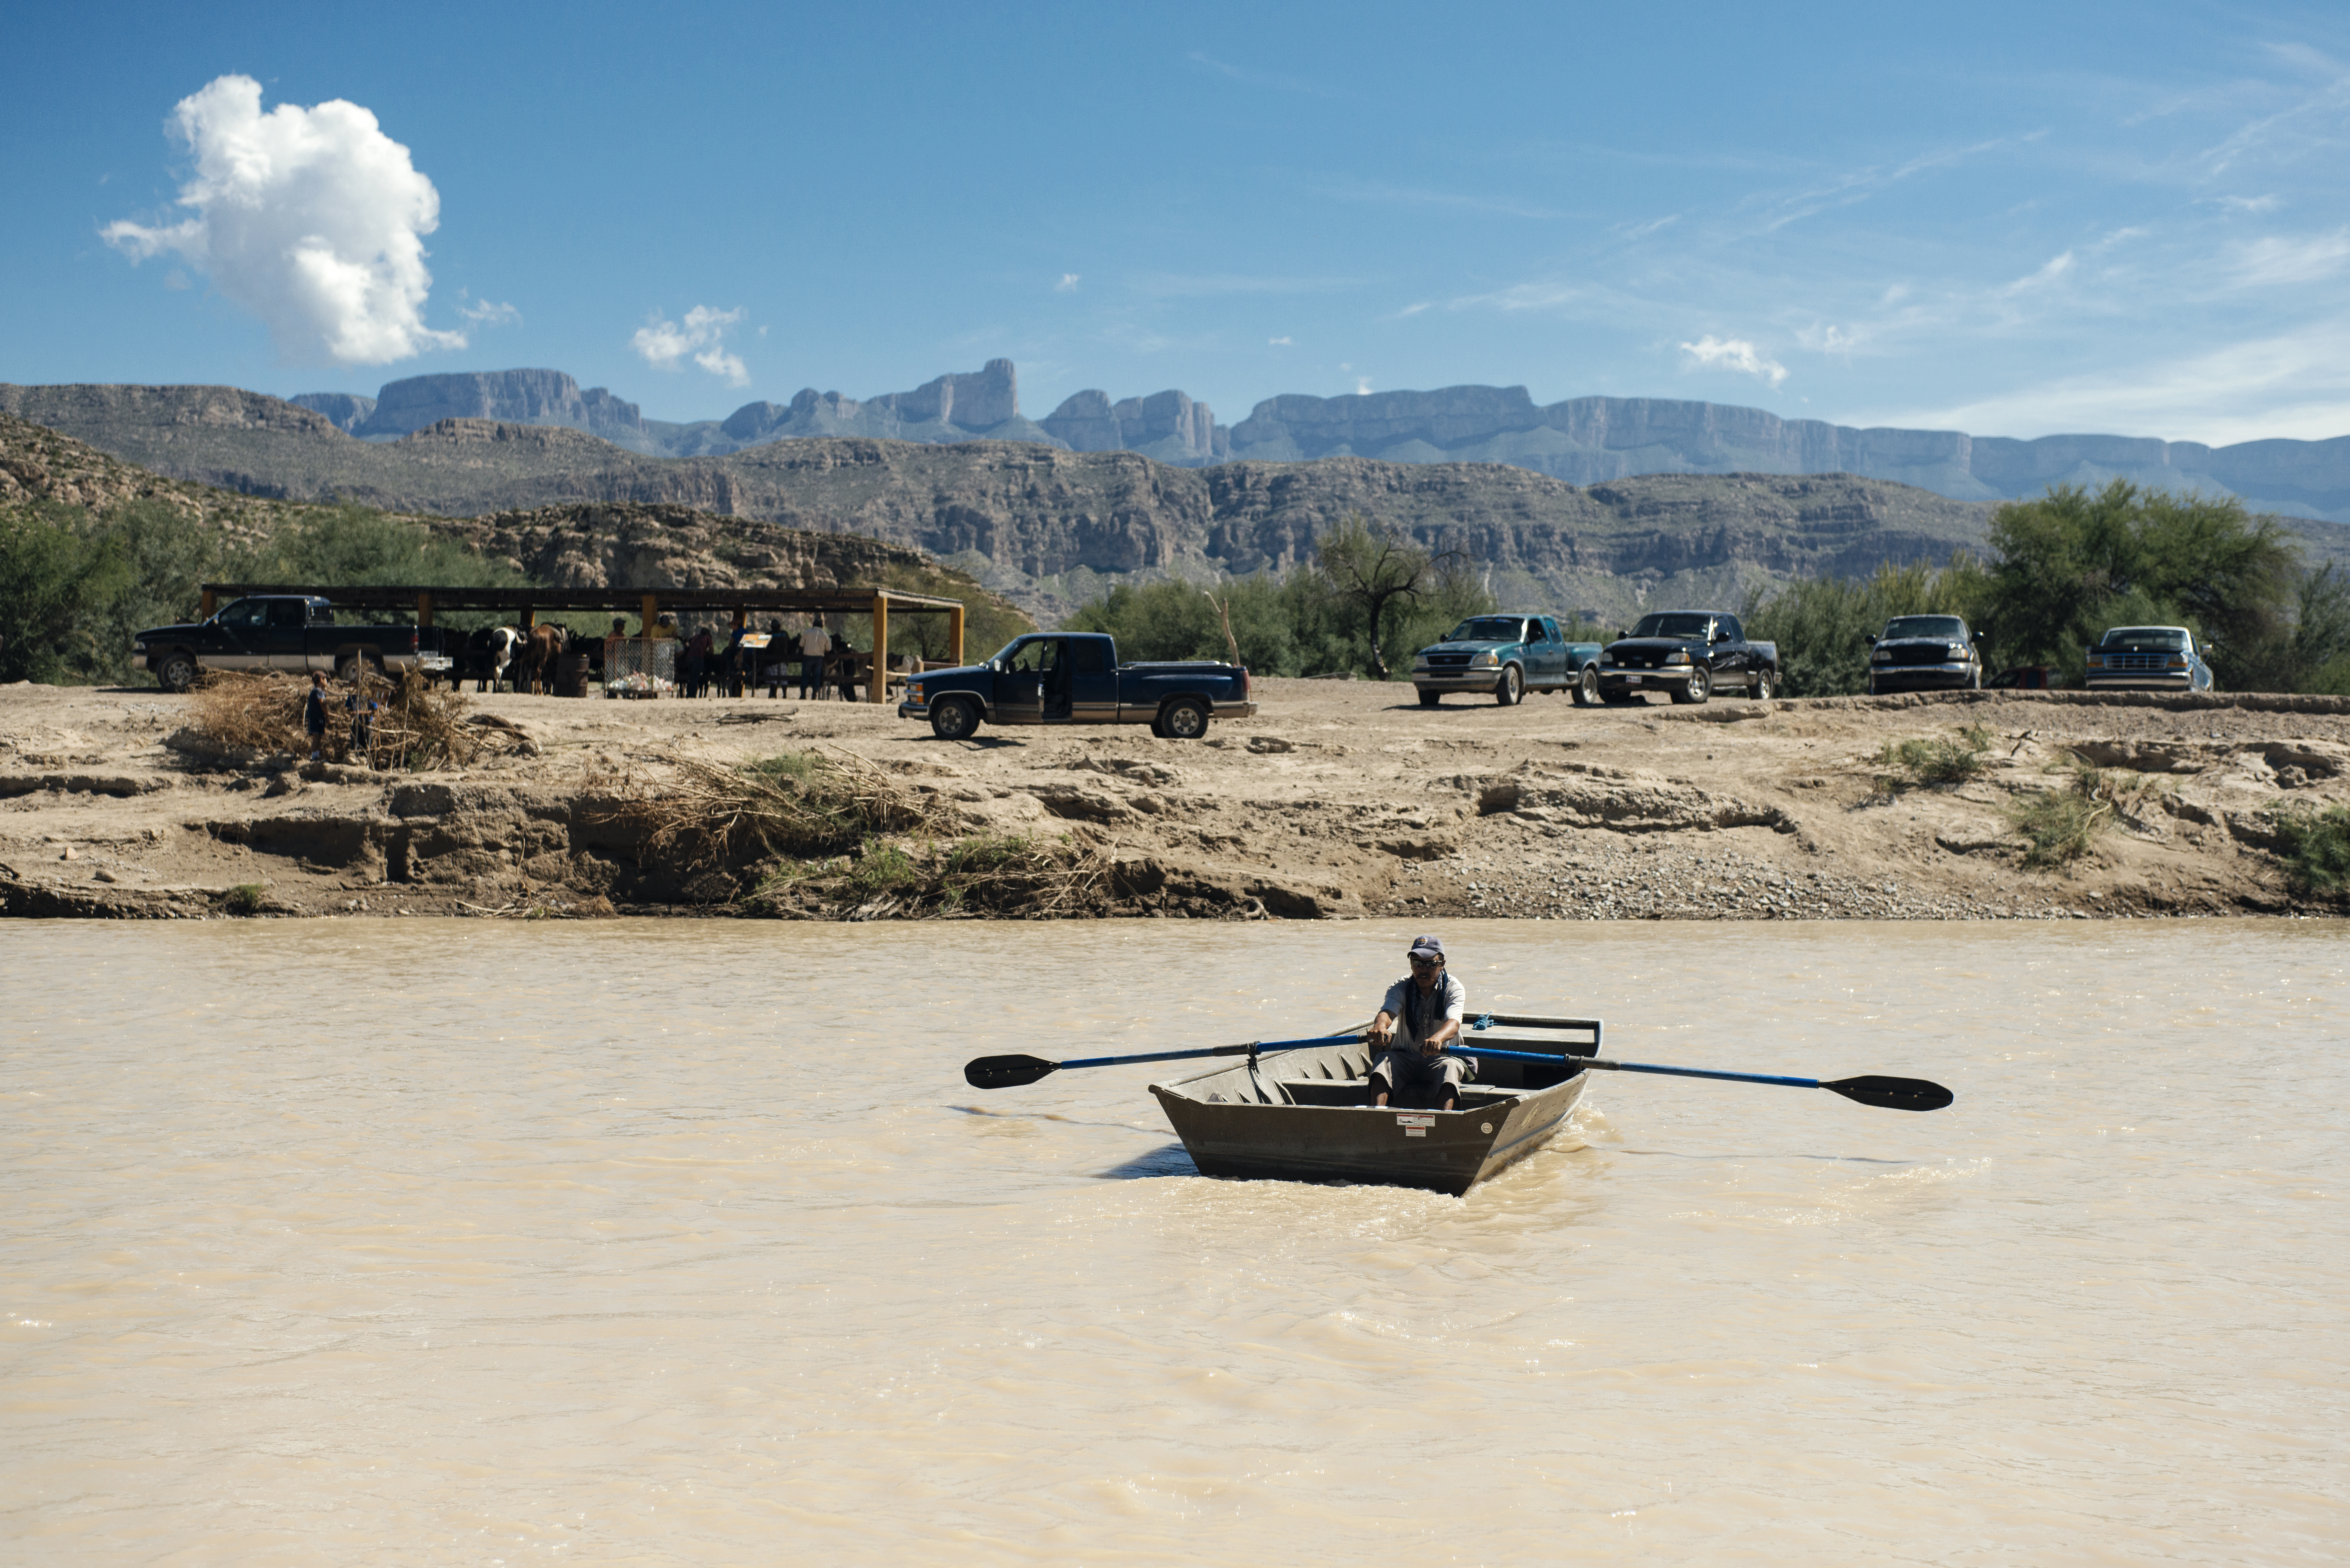 The Boquillas International Ferry takes visitors across the Rio Grande.